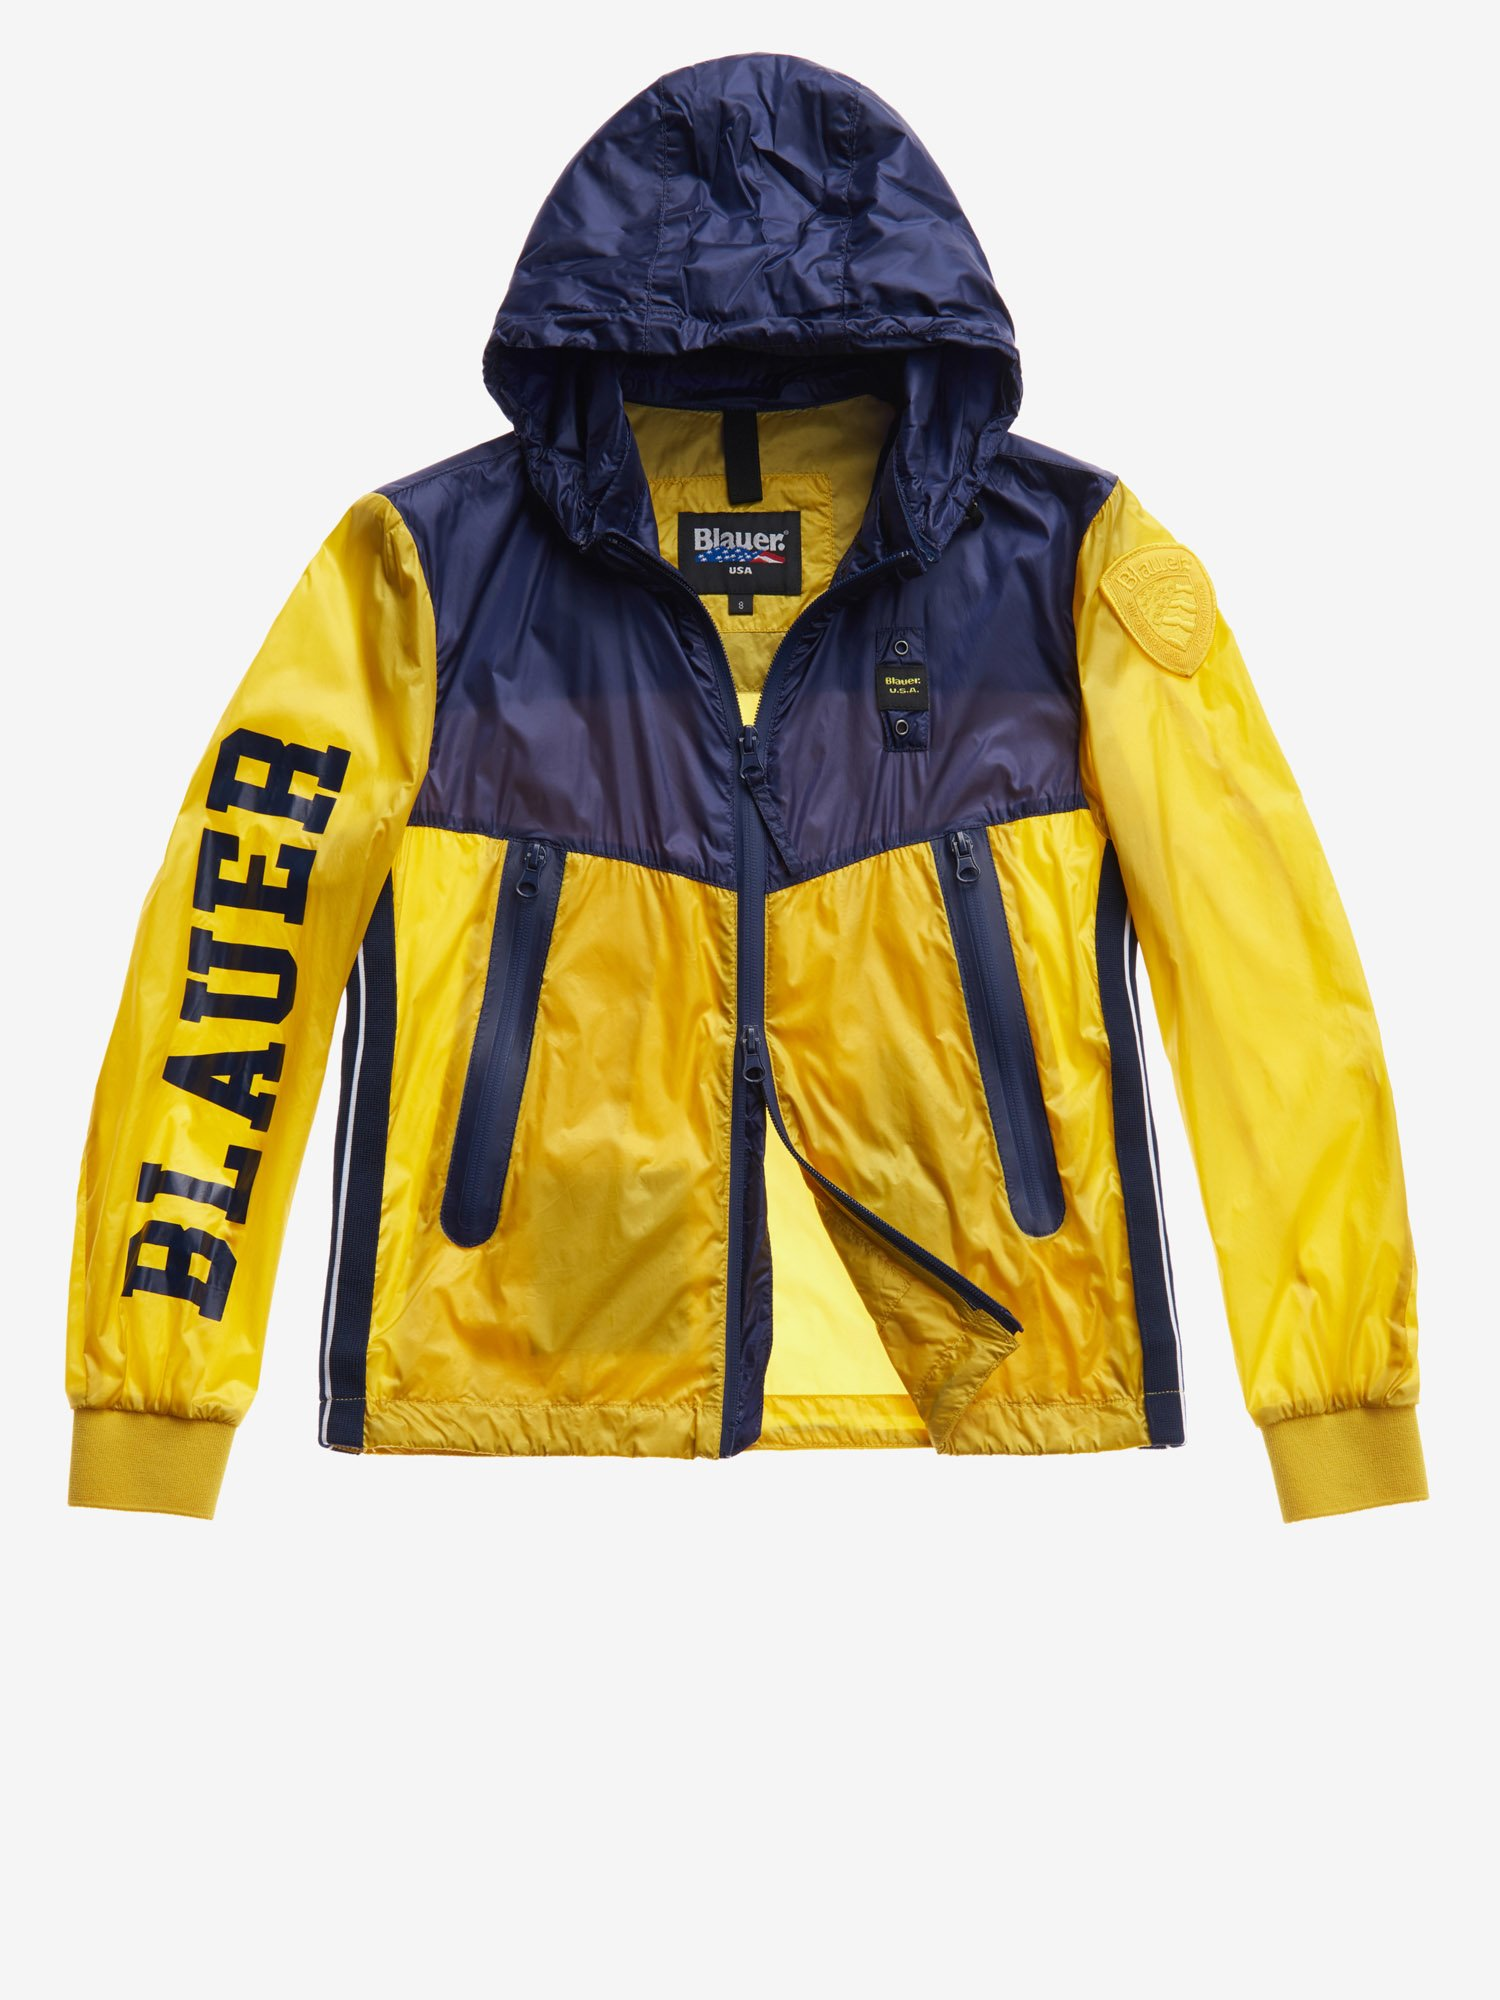 Blauer - CAZADORA JUNIOR NAILON TRANSPARENTE BICOLOR - Canary - Blauer